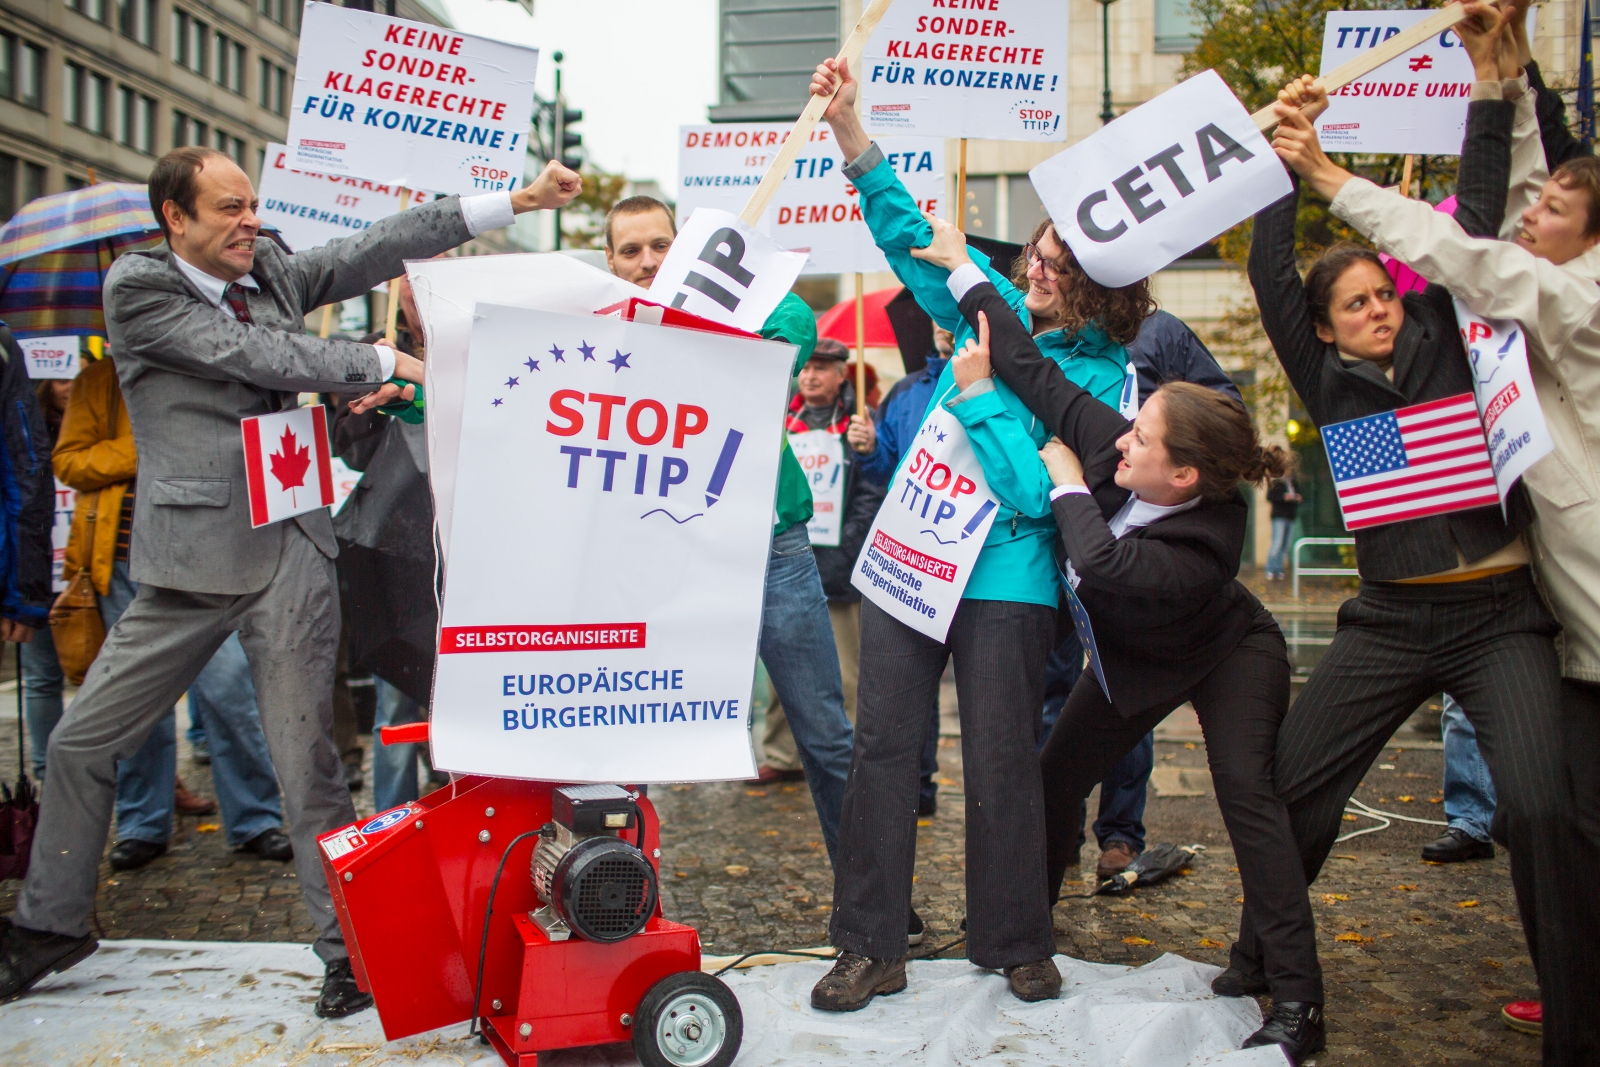 Activists protest against planned trade pacts; TTIP (Transatlantic Trade and Investment Partnership) and CETA (Comprehensive Economic and Trade Agreement) with the U.S. and Canada, in Berlin October 11, 2014